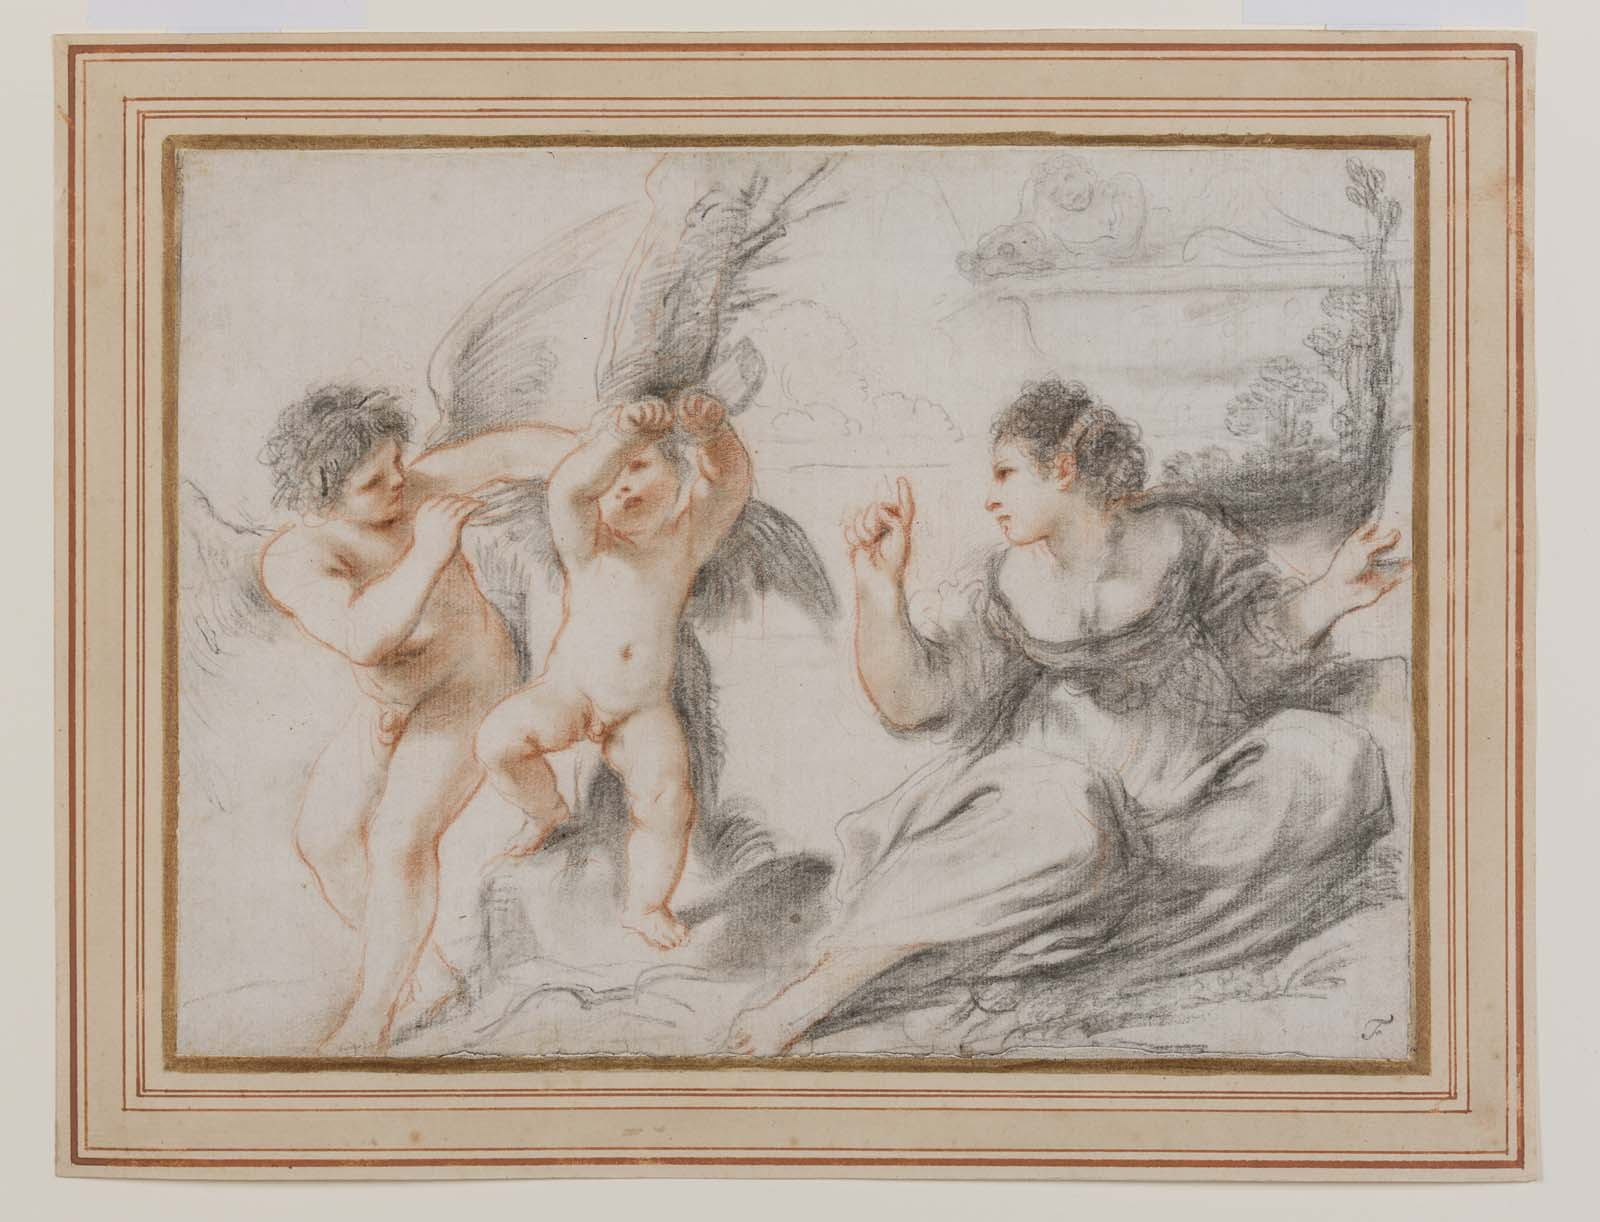 drawing of two cherubs and a woman